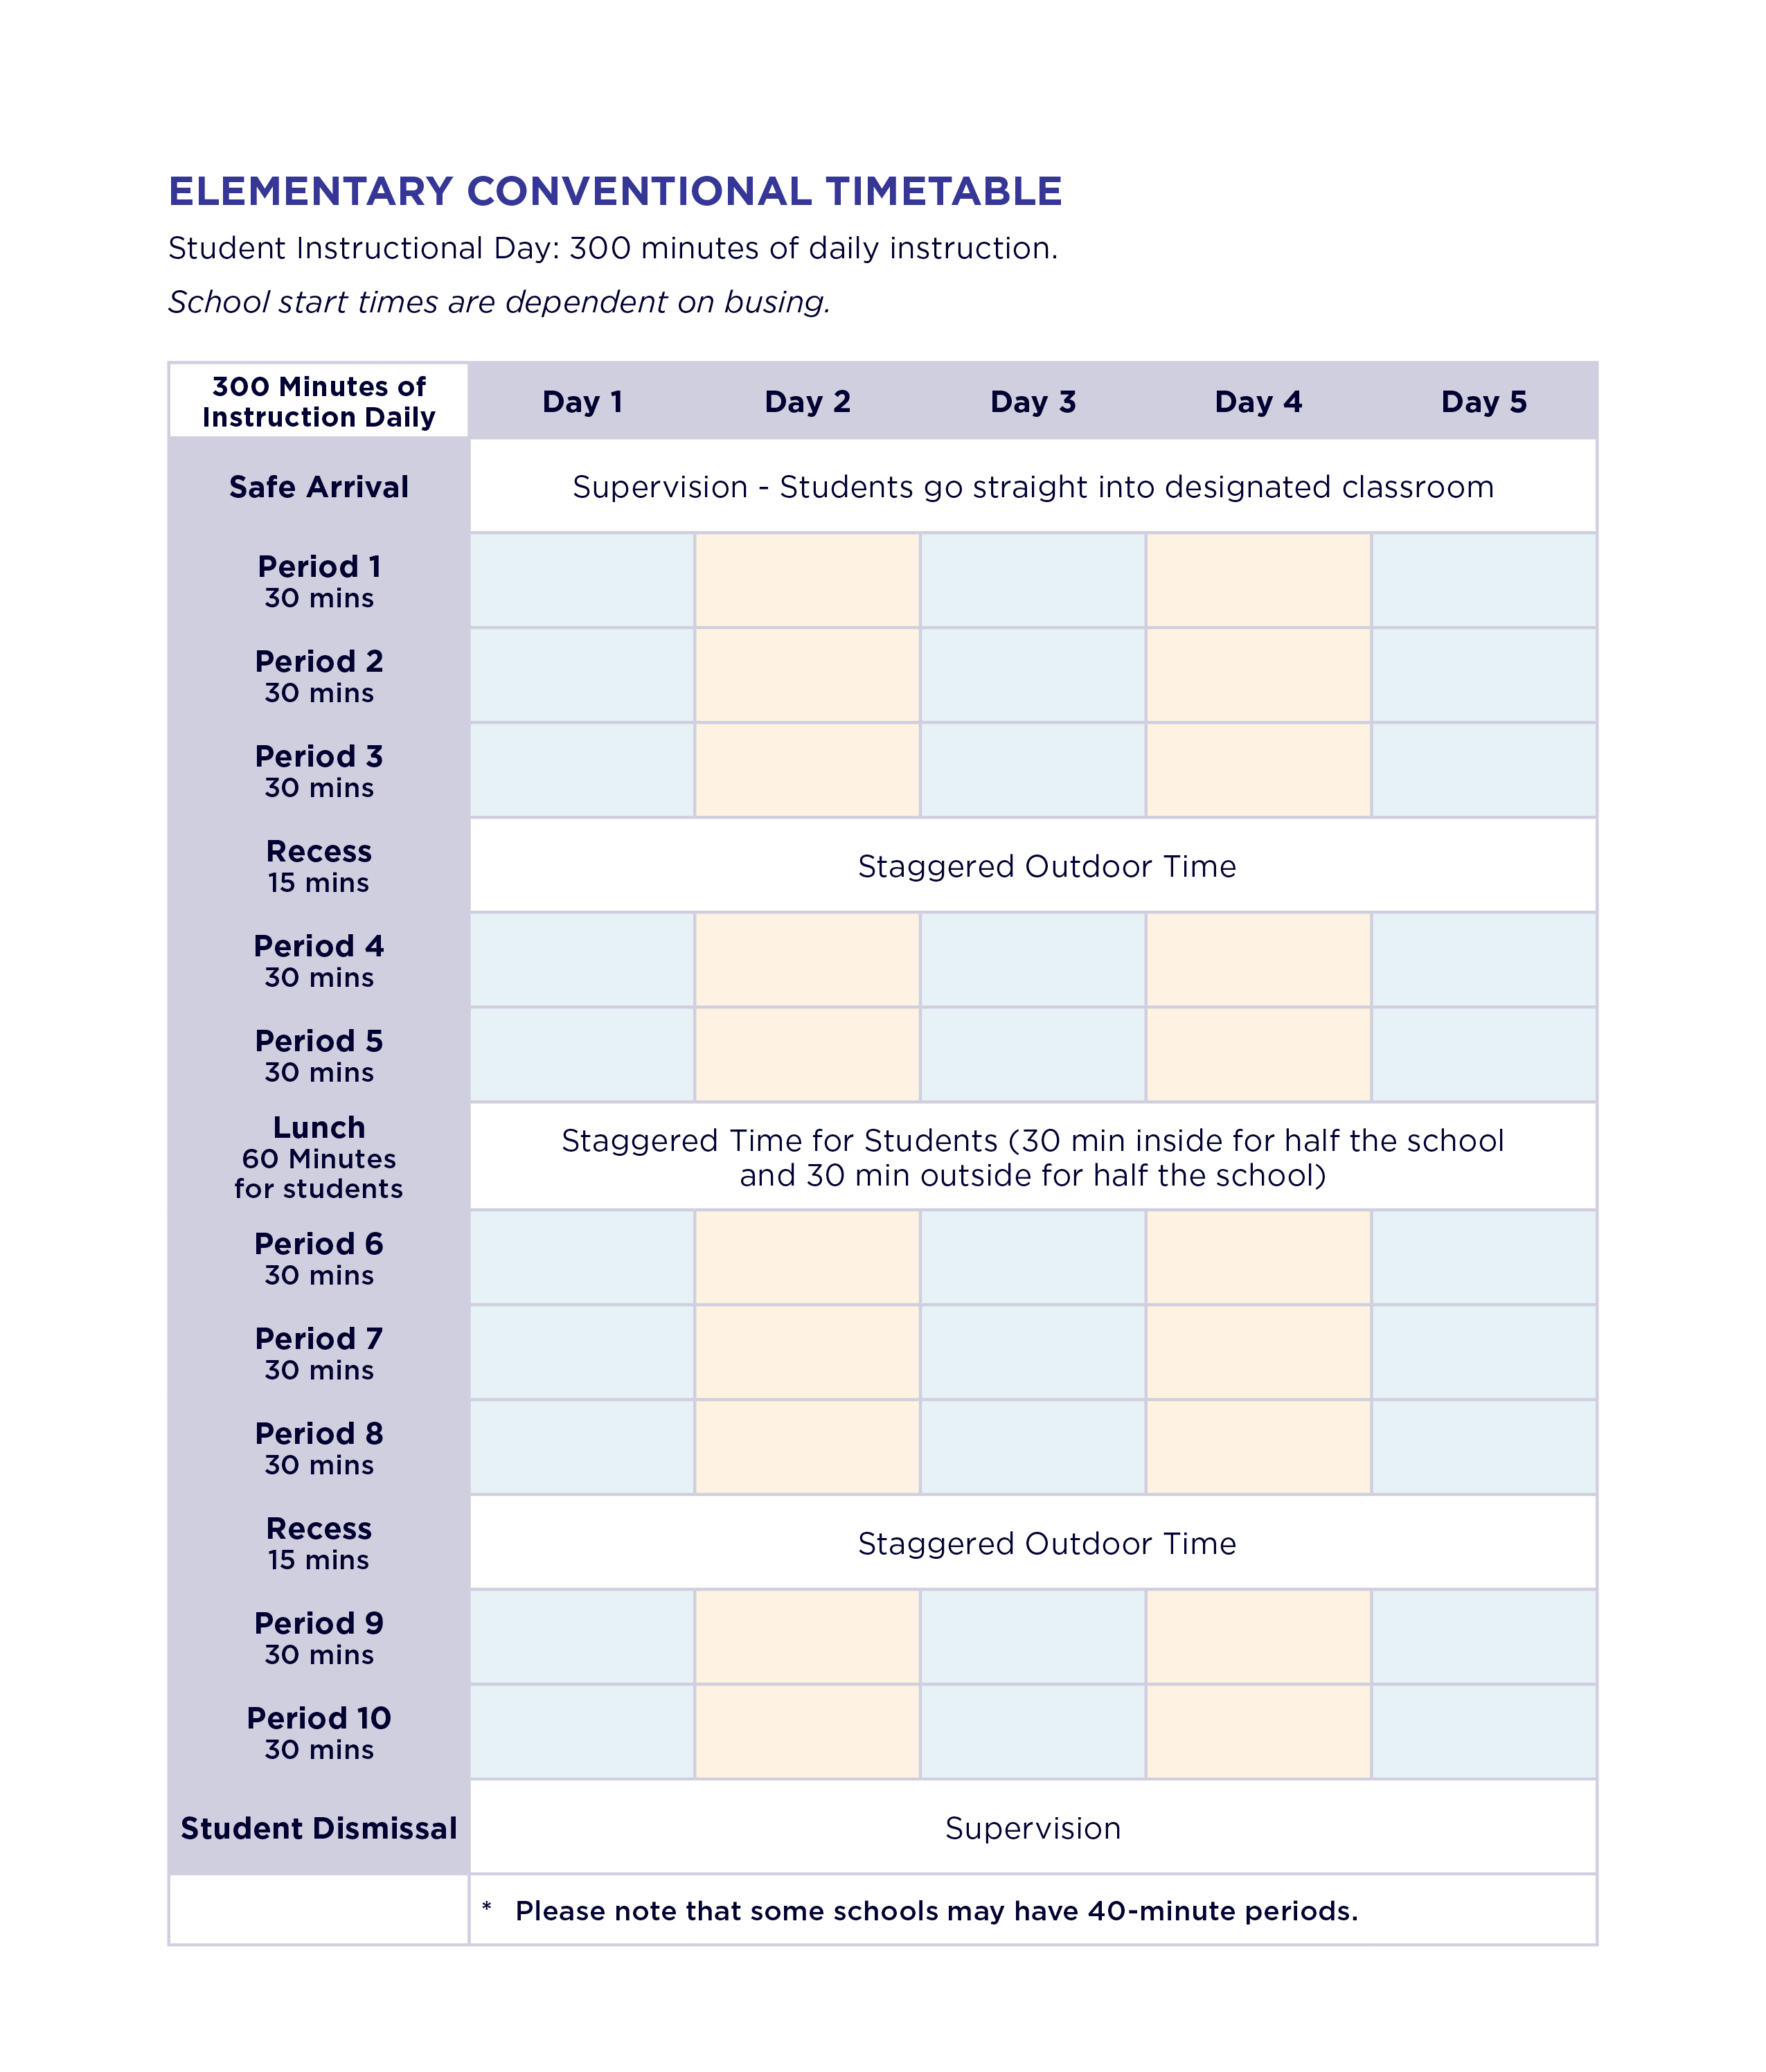 Sample Timetable for Elementary Schools